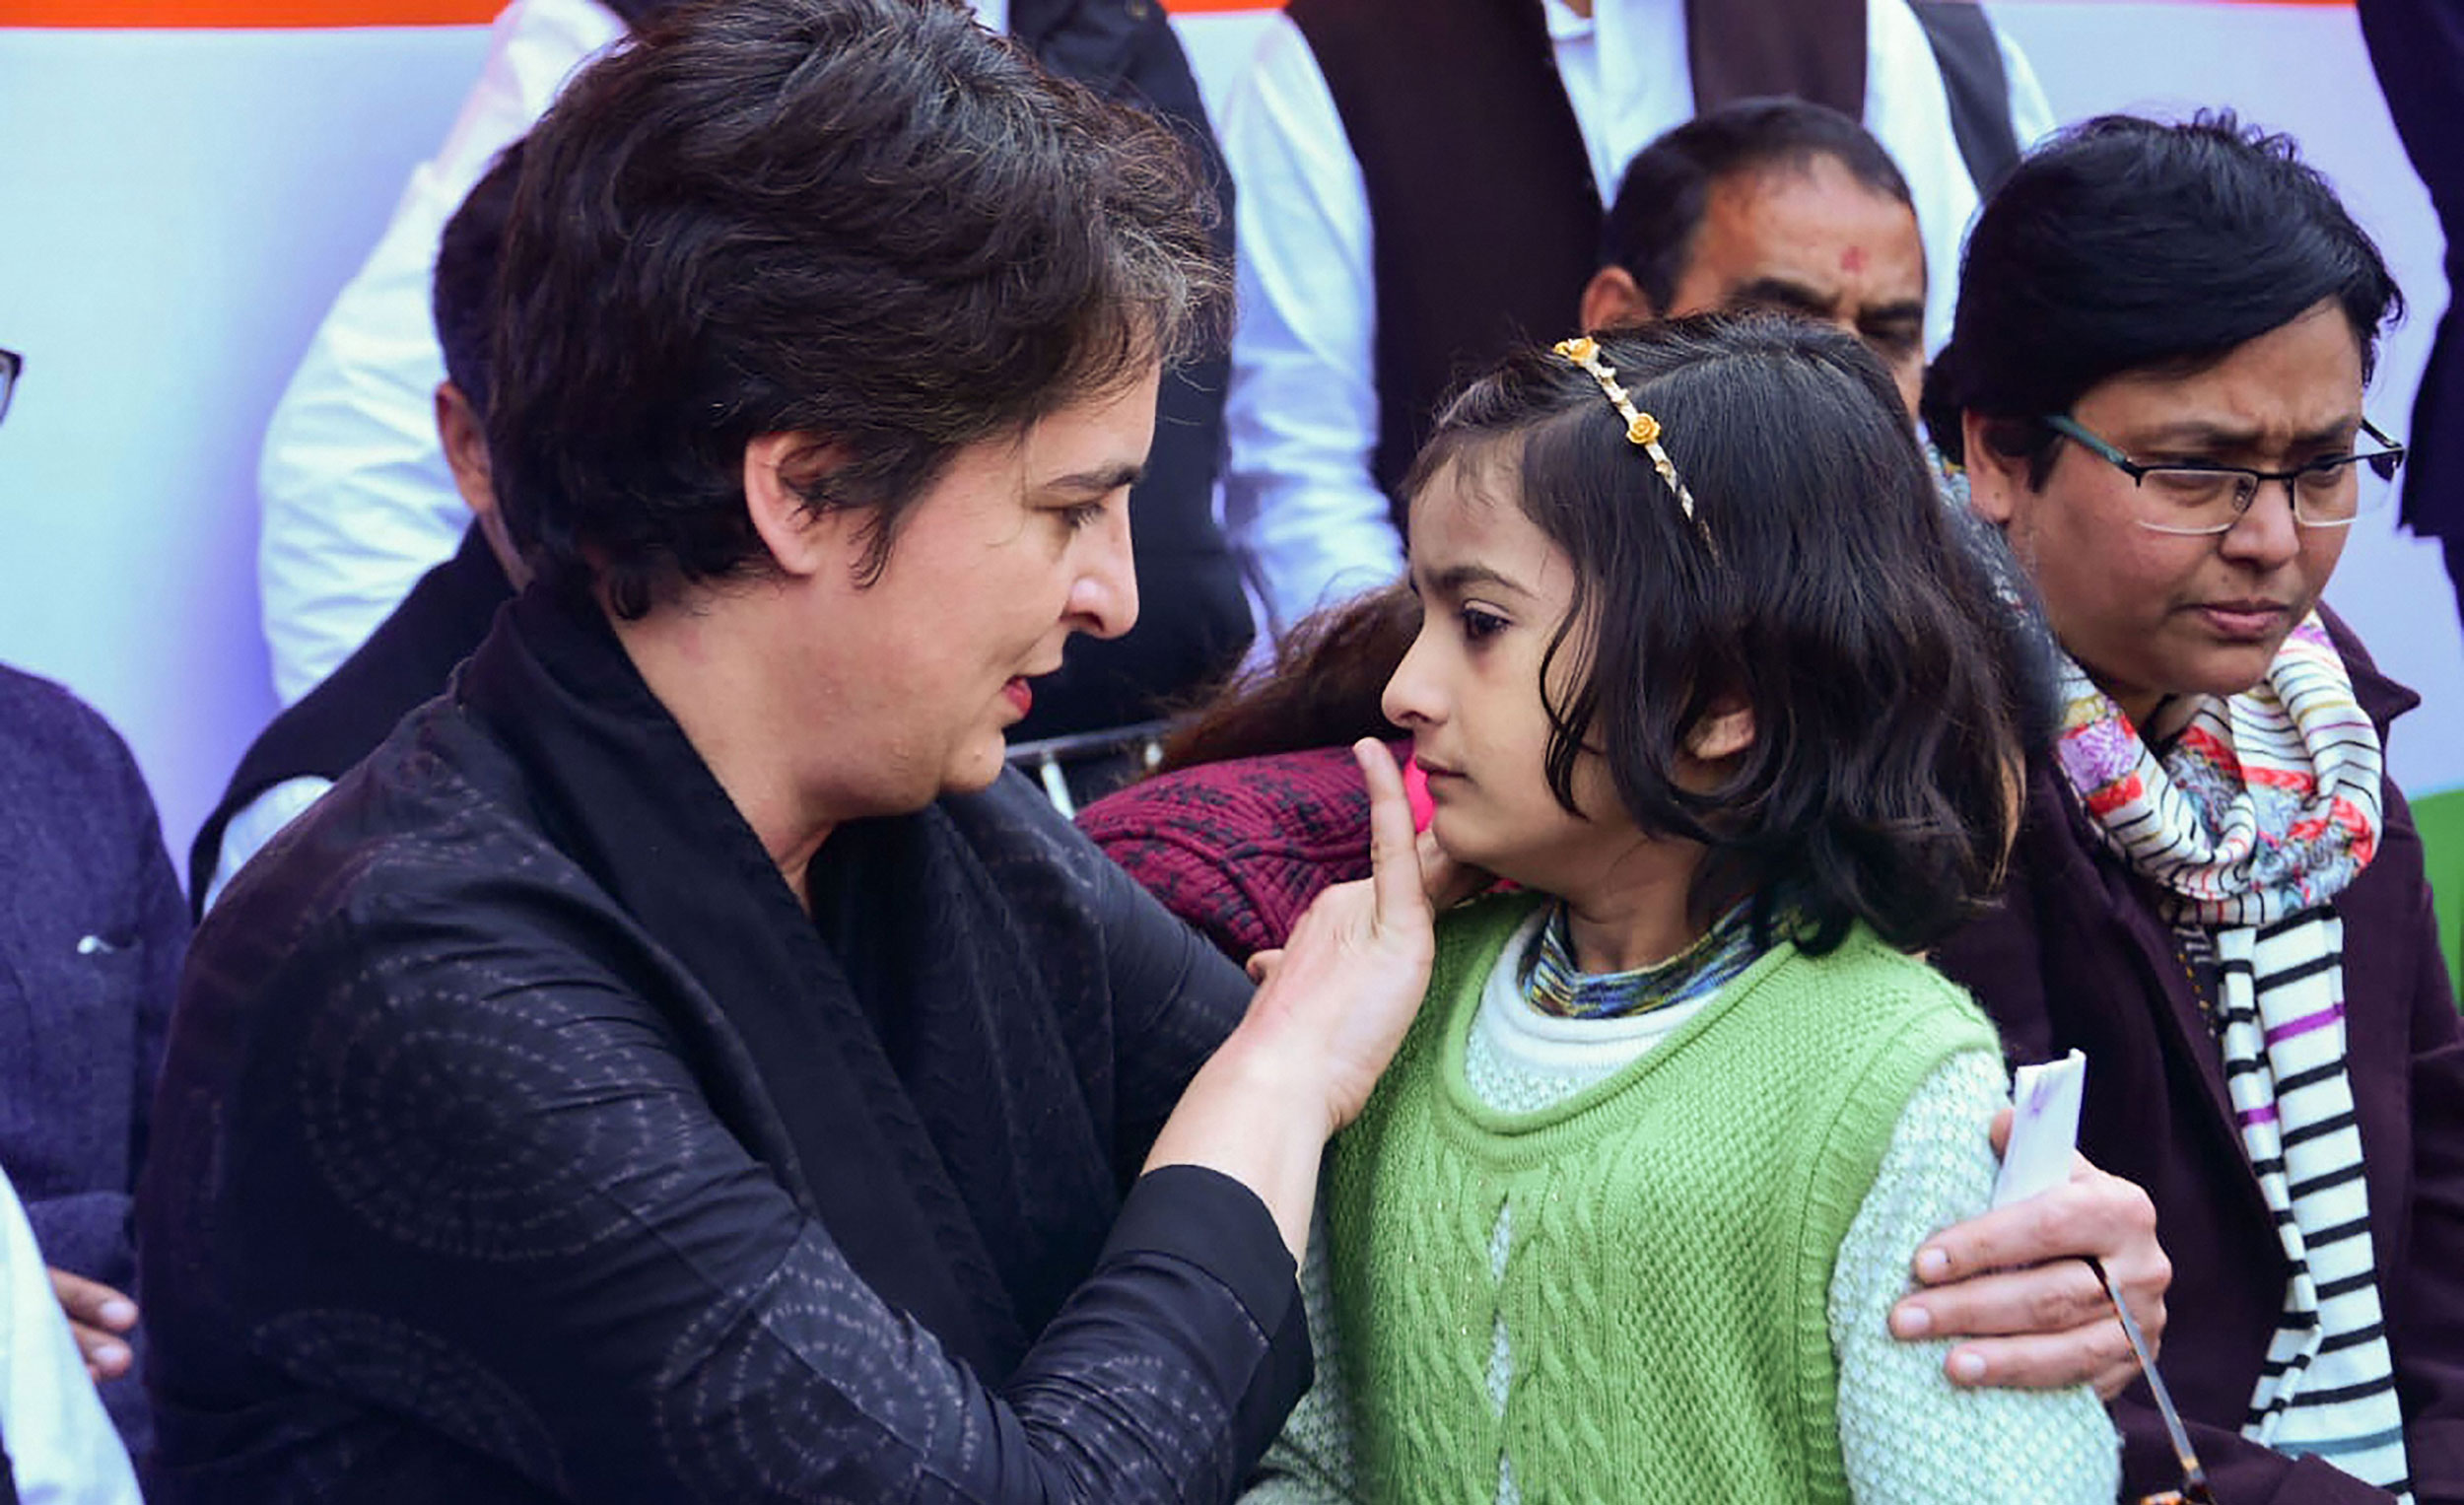 Priyanka Gandhi Vadra interacts with a girl while meeting with women who have been agitating against the Citizenship Amendment Act and National Register of Citizens (NRC), at Bilariyaganj in Azamgarh.